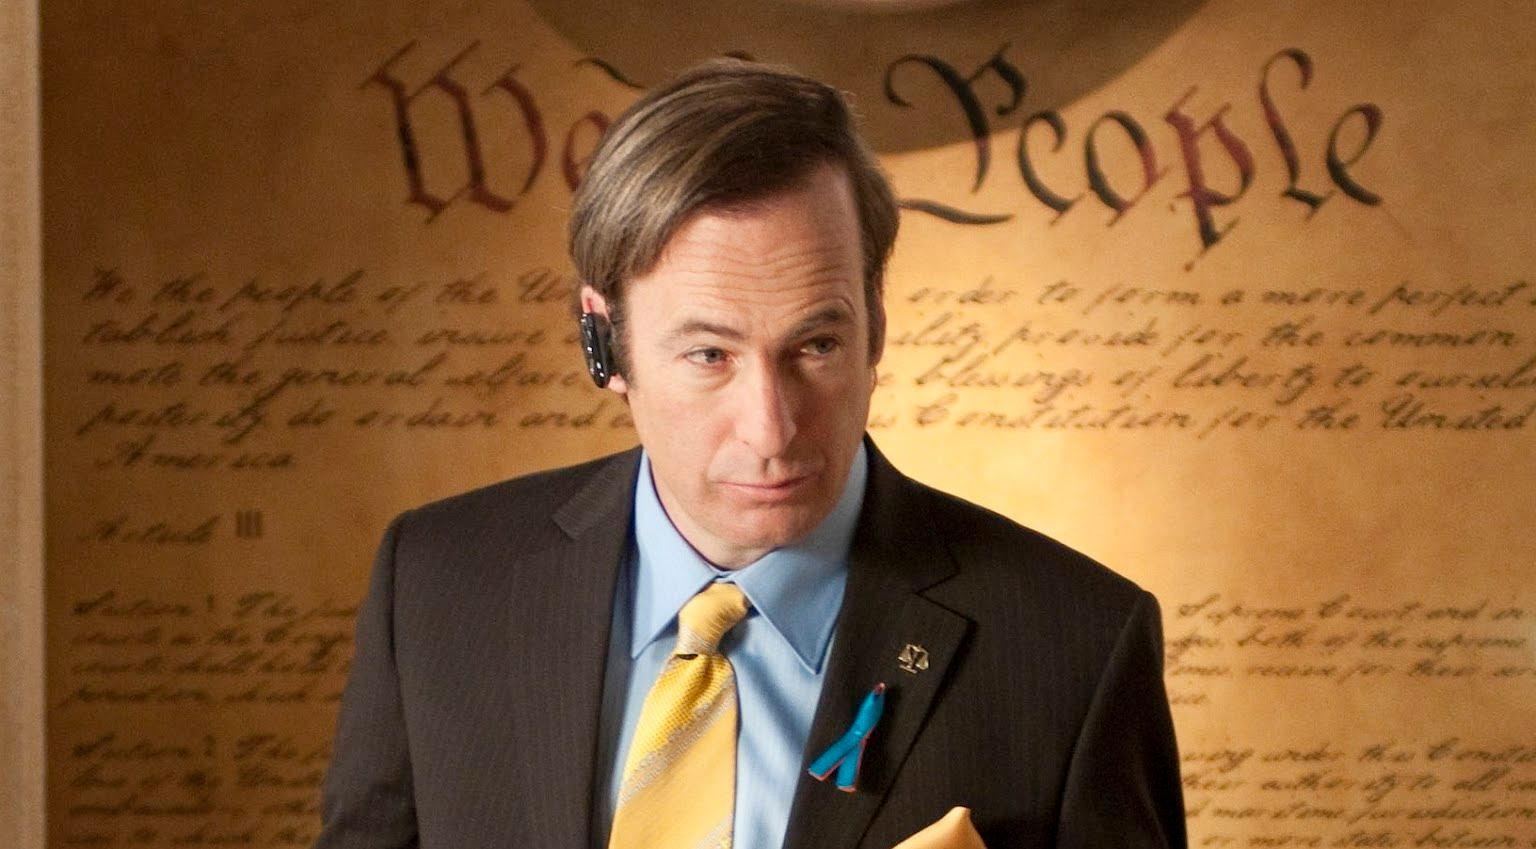 Better Call Saul Season 5 Plot Predictions and Saul Goodman